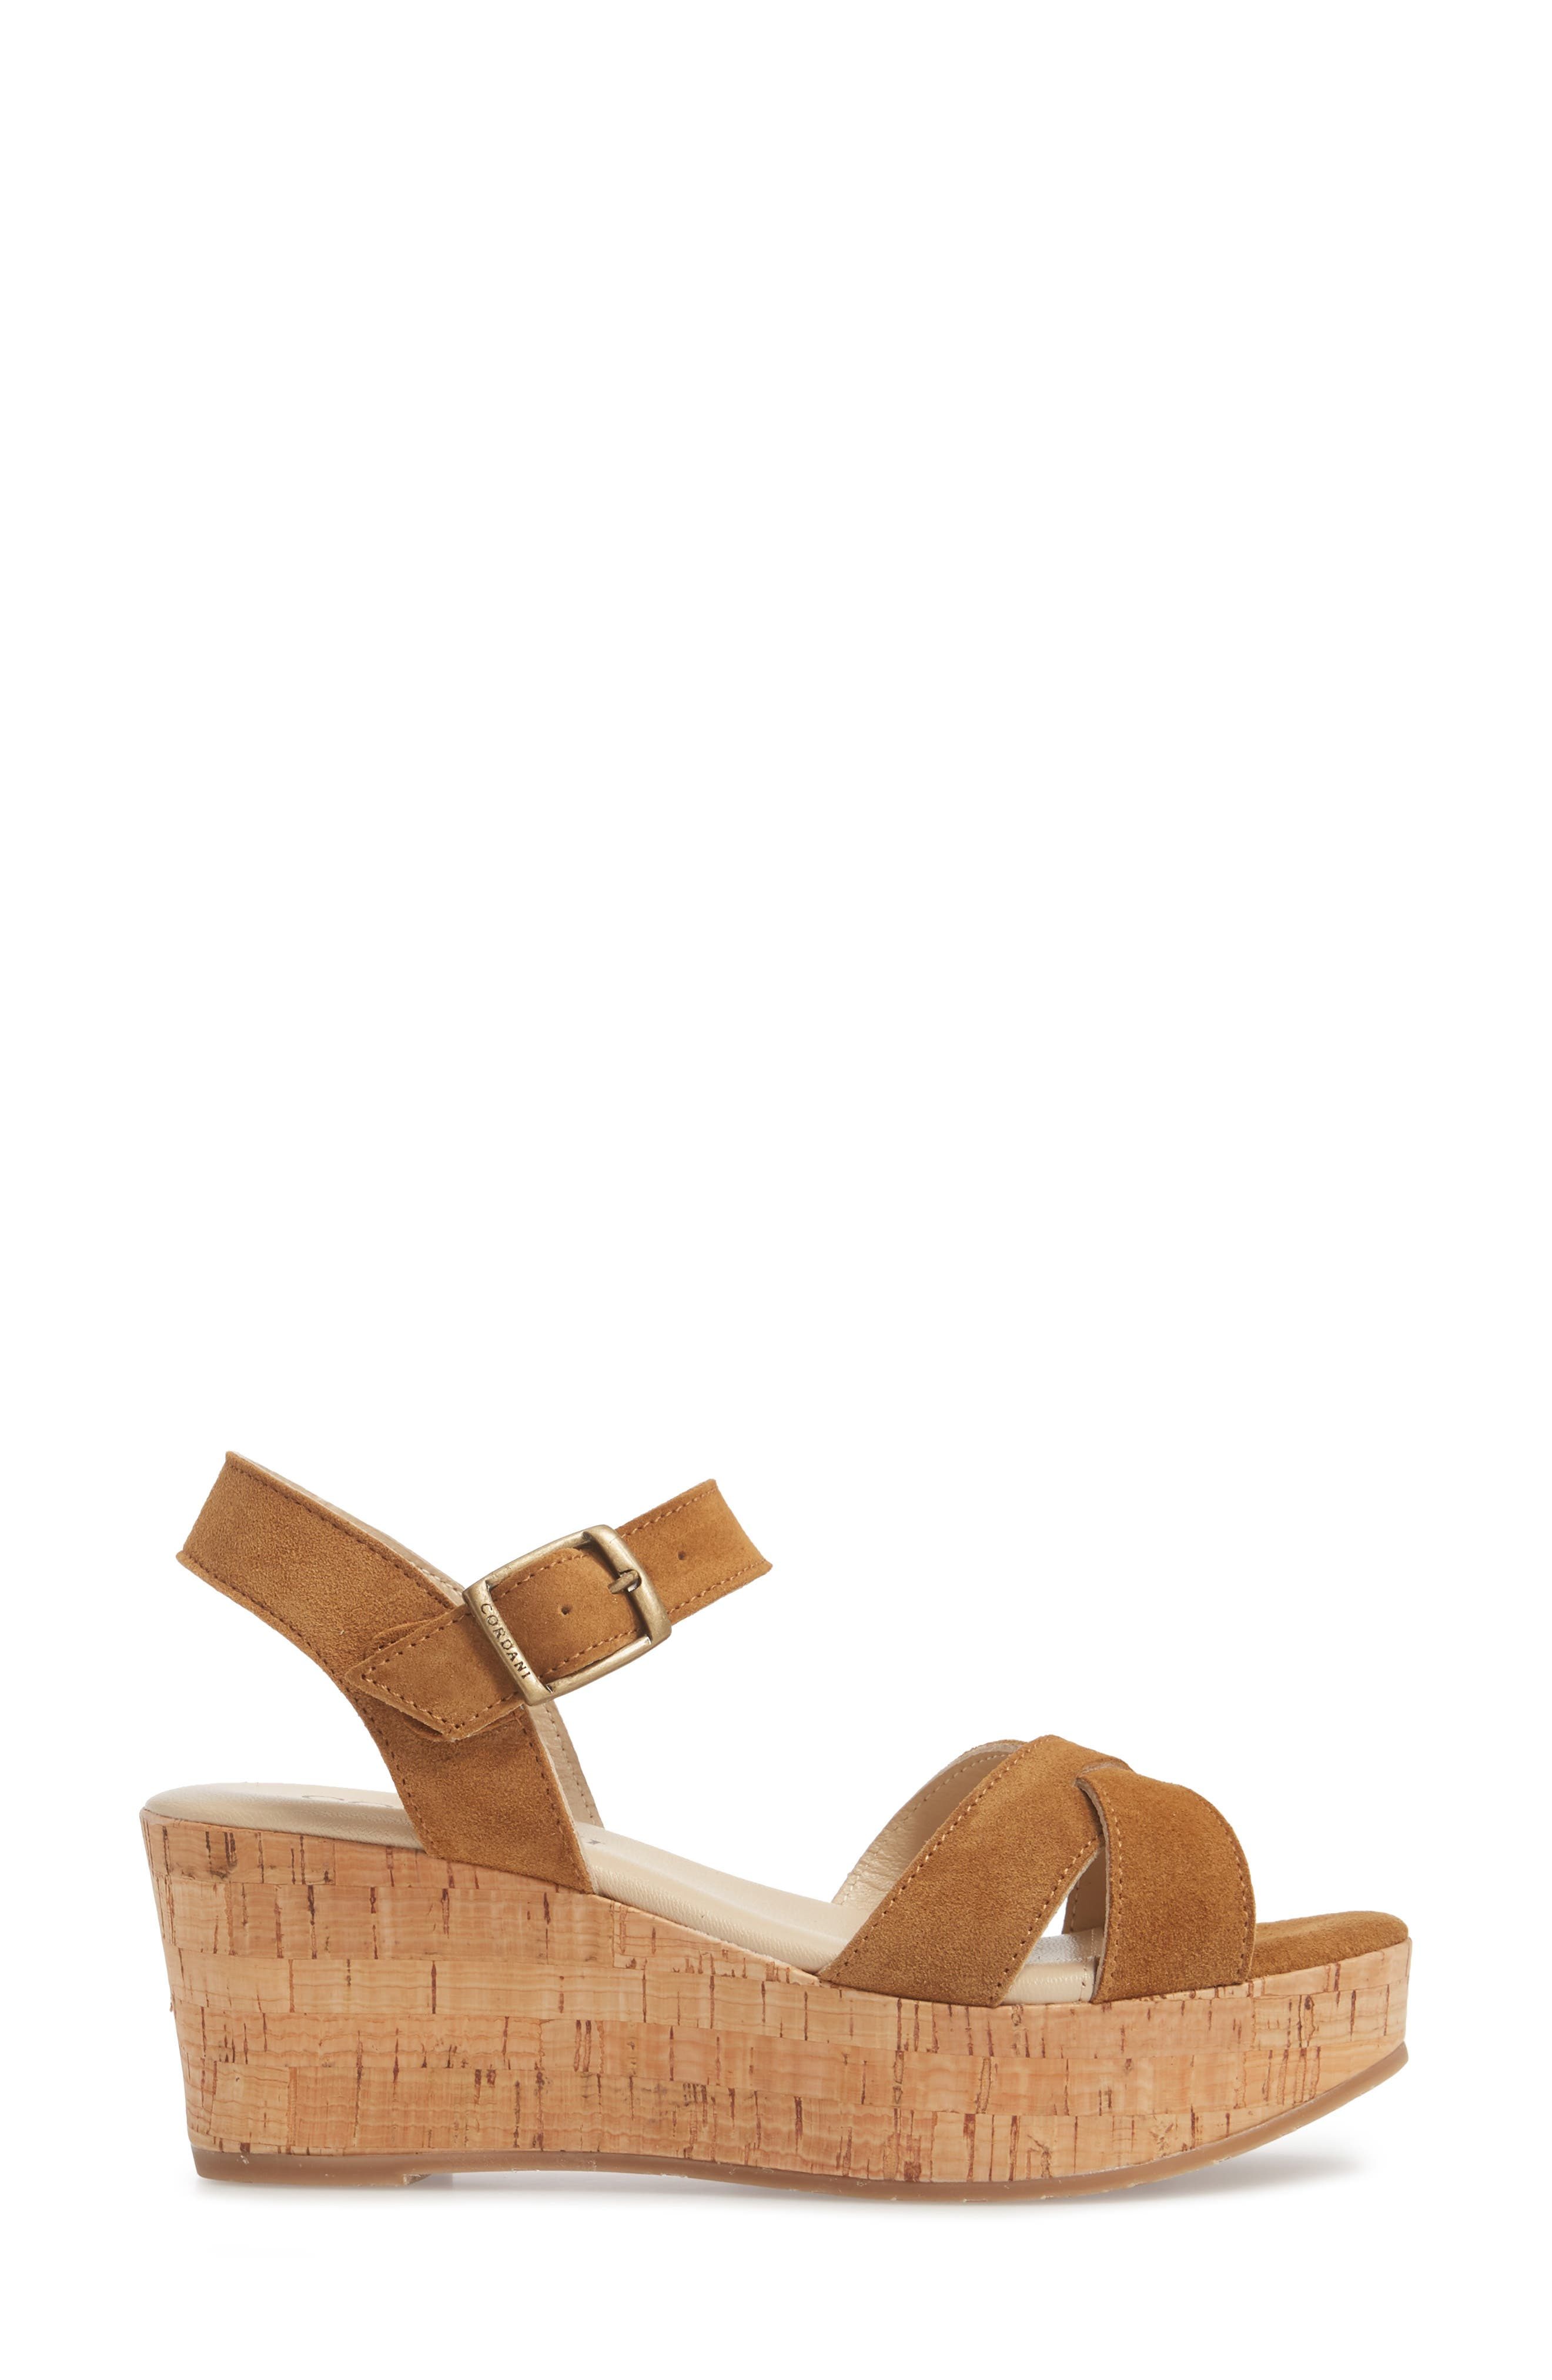 Candy Wedge Sandal,                             Alternate thumbnail 3, color,                             Cola Suede